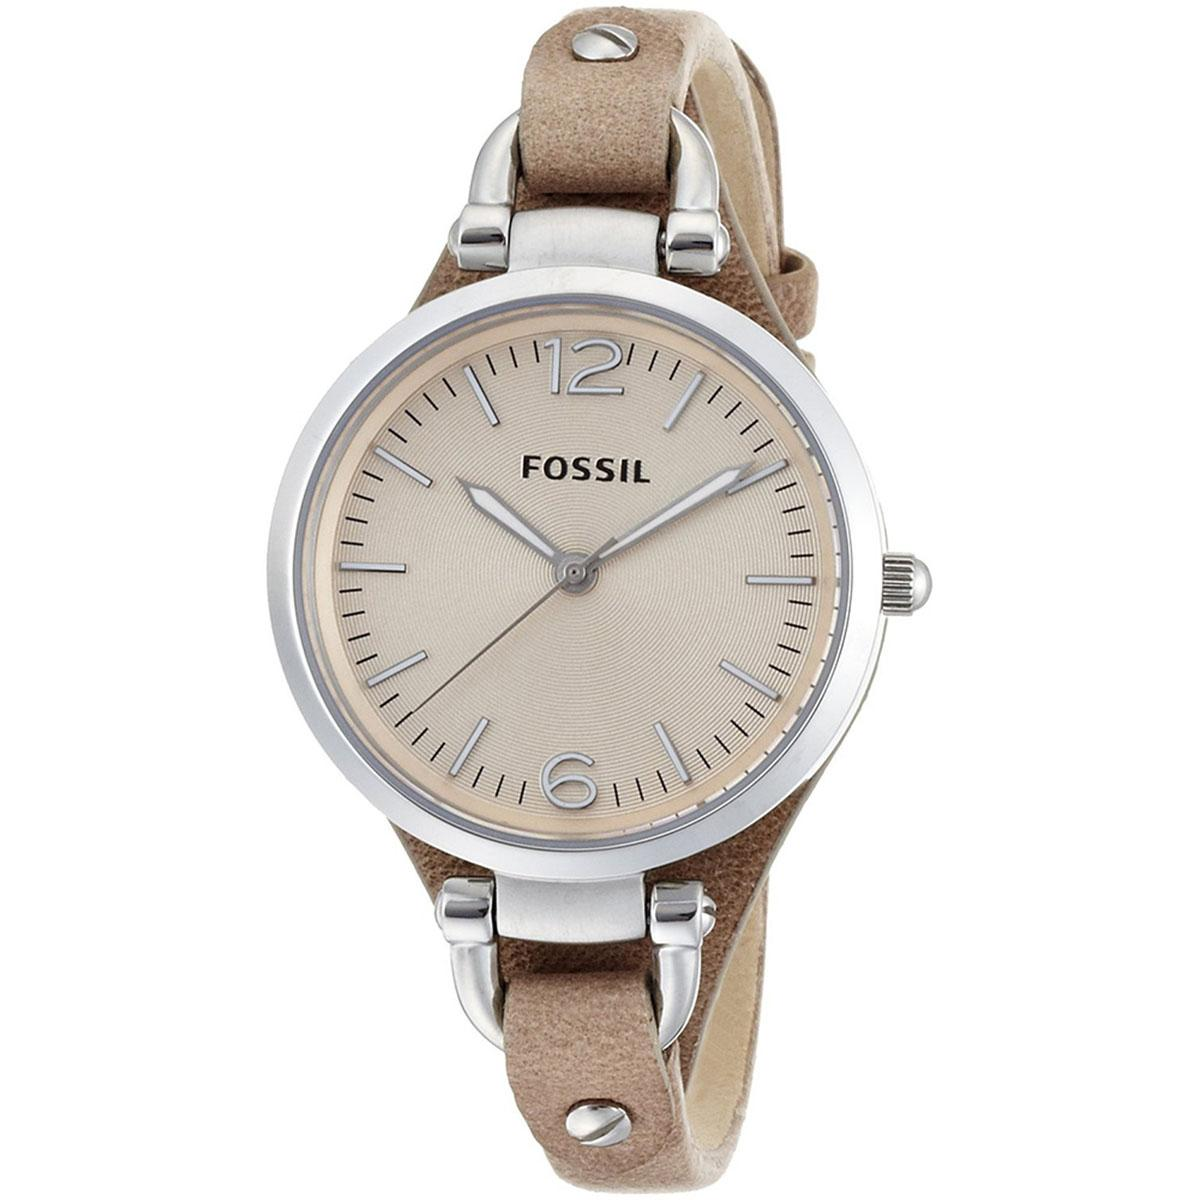 Sell Fossil Es4094 Mineral Cheapest Best Quality Ph Store Breaker Stainless Steel Watch Fs 5049 Php 4470 Georgia Brown Case Leather Strap